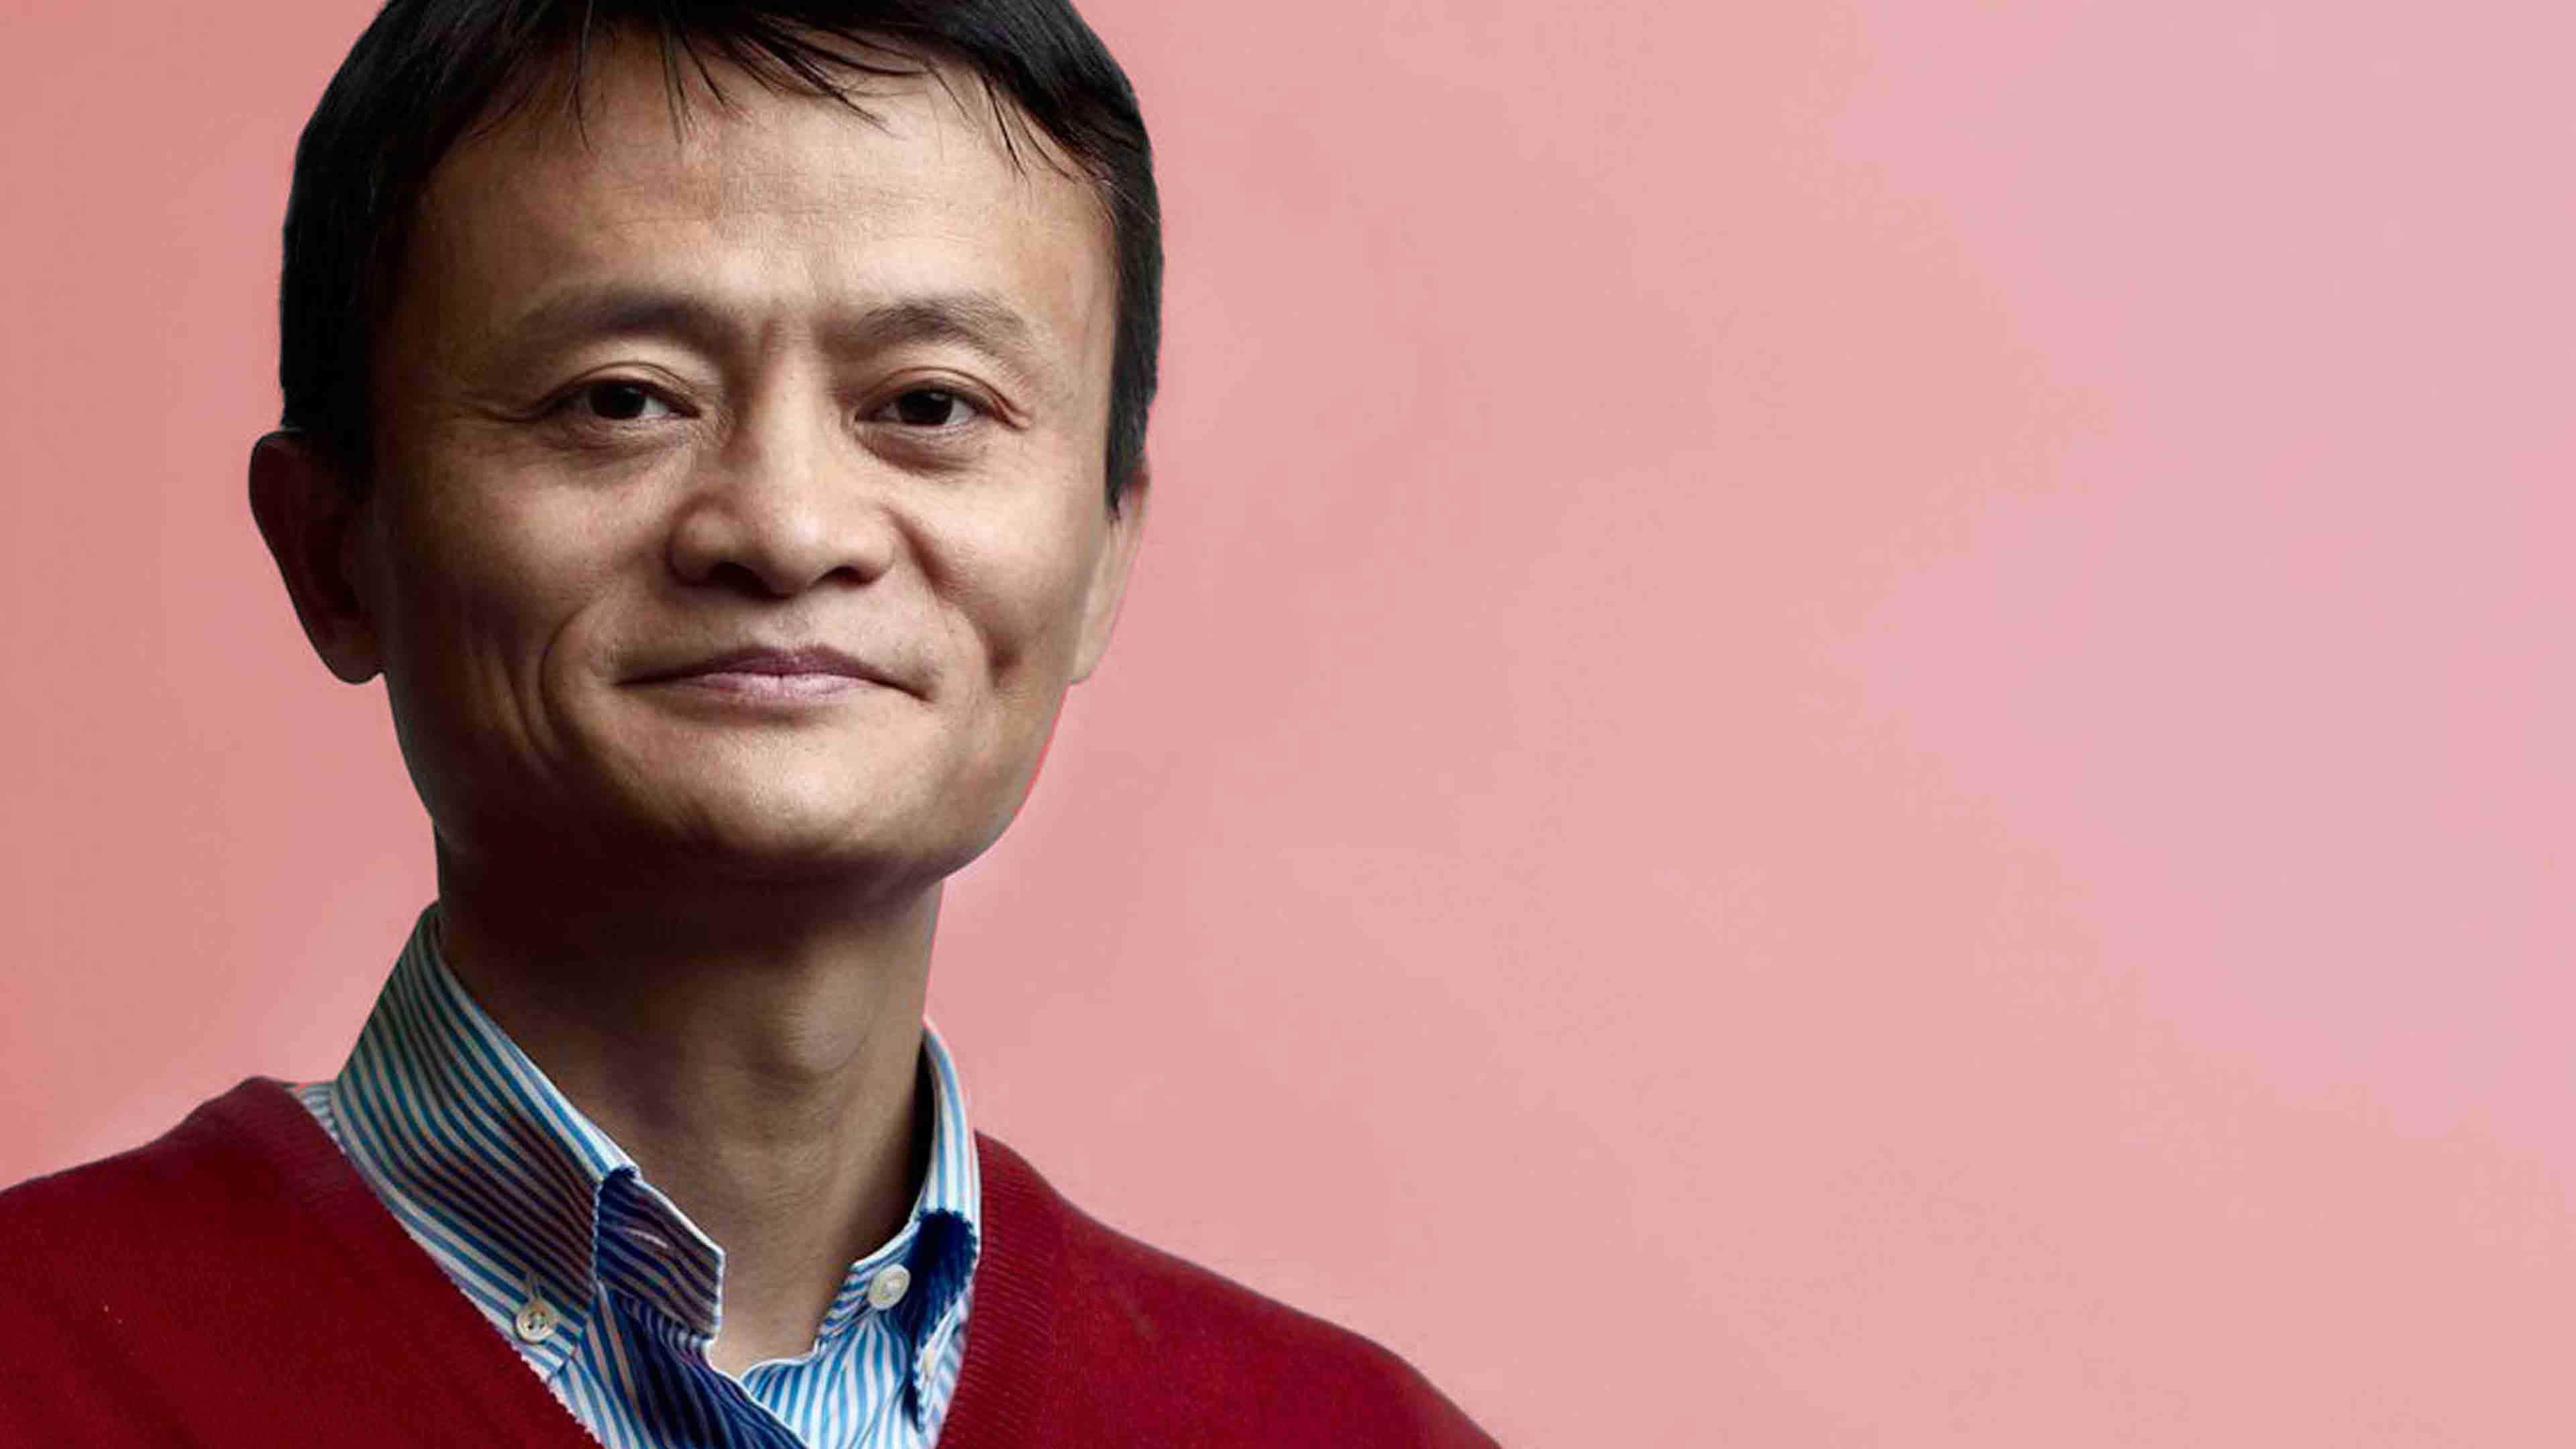 Jack Ma Wallpapers Wallpaper Cave